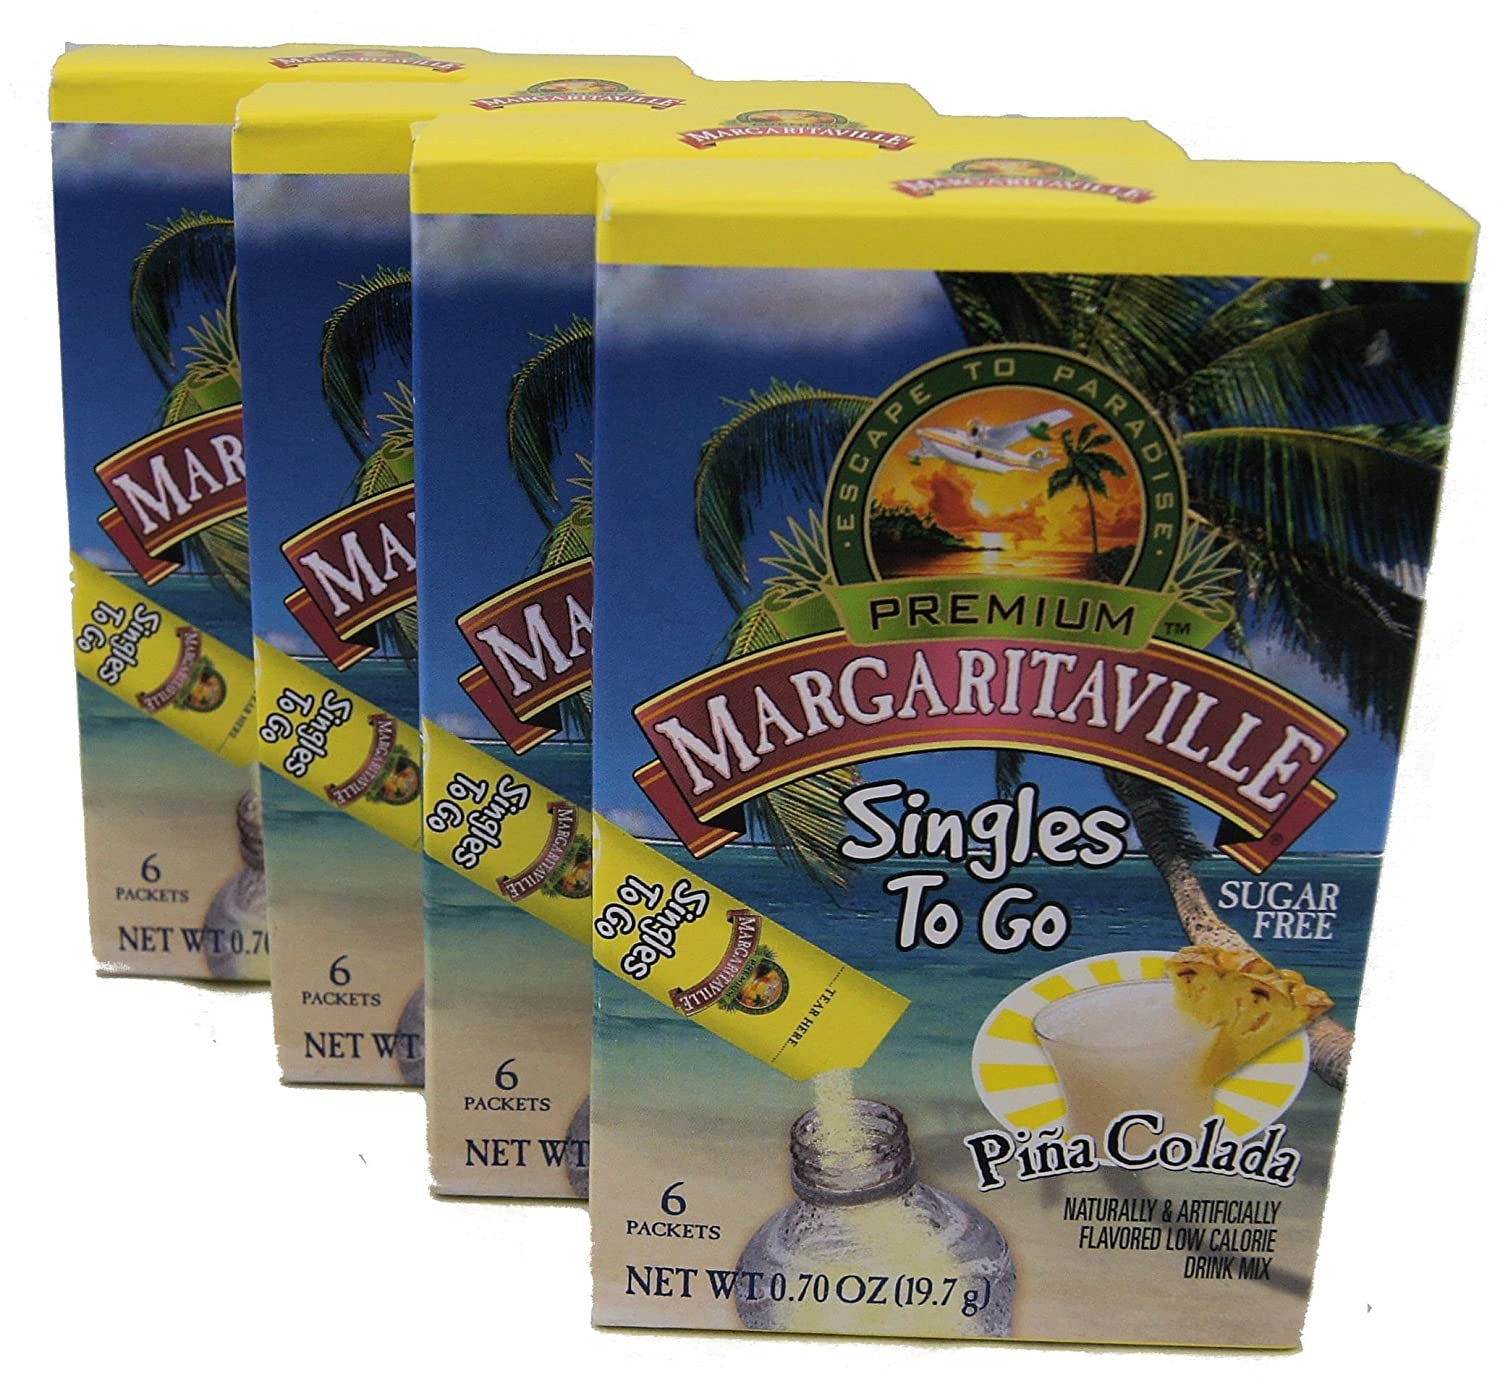 Margaritaville Pina Colada Singles to Go 6 Packets X 4 Boxes =24 Packets